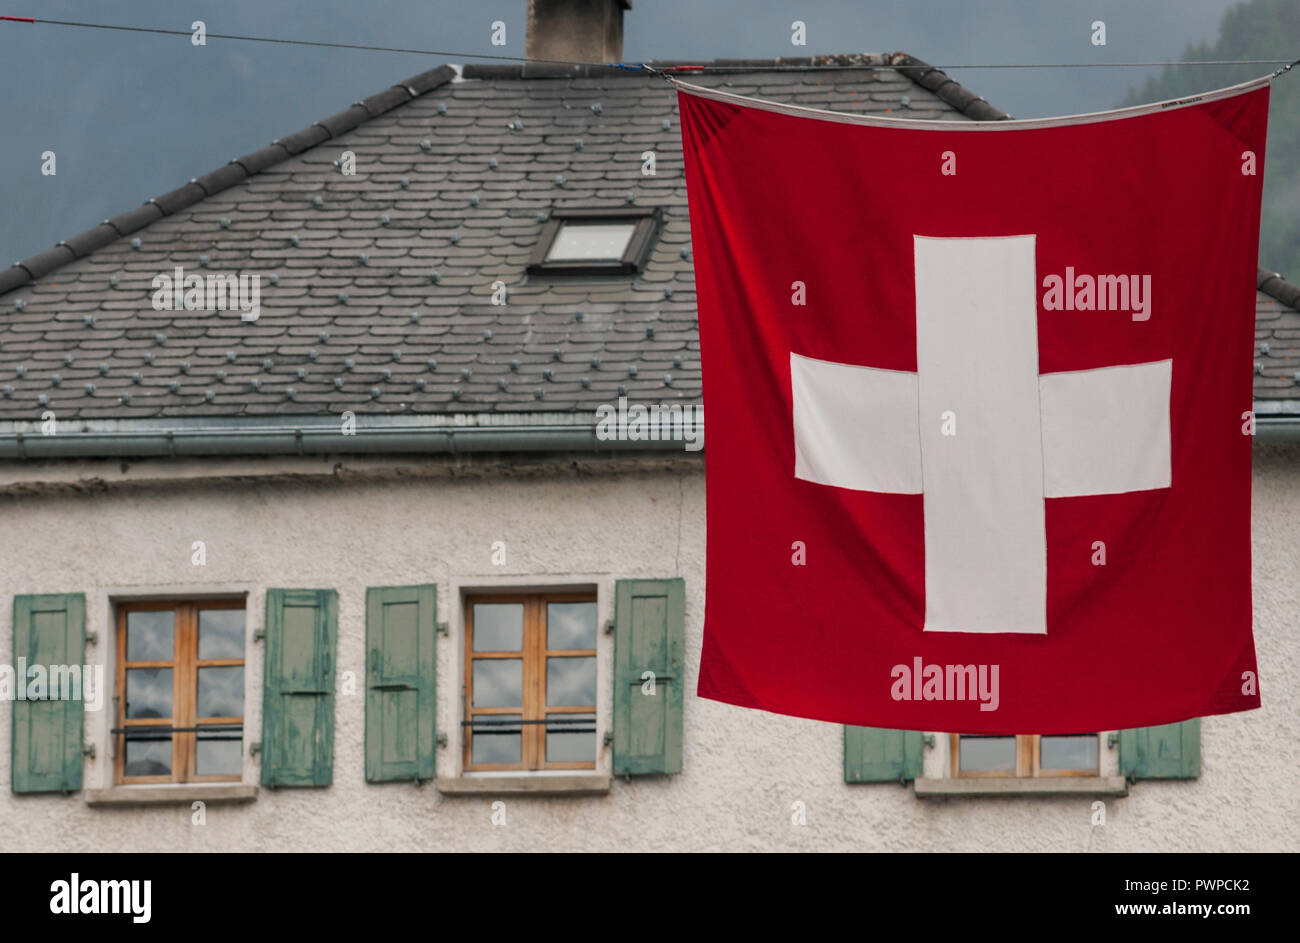 Switzerland, Valais canton, region of Sierre and Val d'Anniviers, village of Saint-Luc. Typical house and Swiss flag. Stock Photo